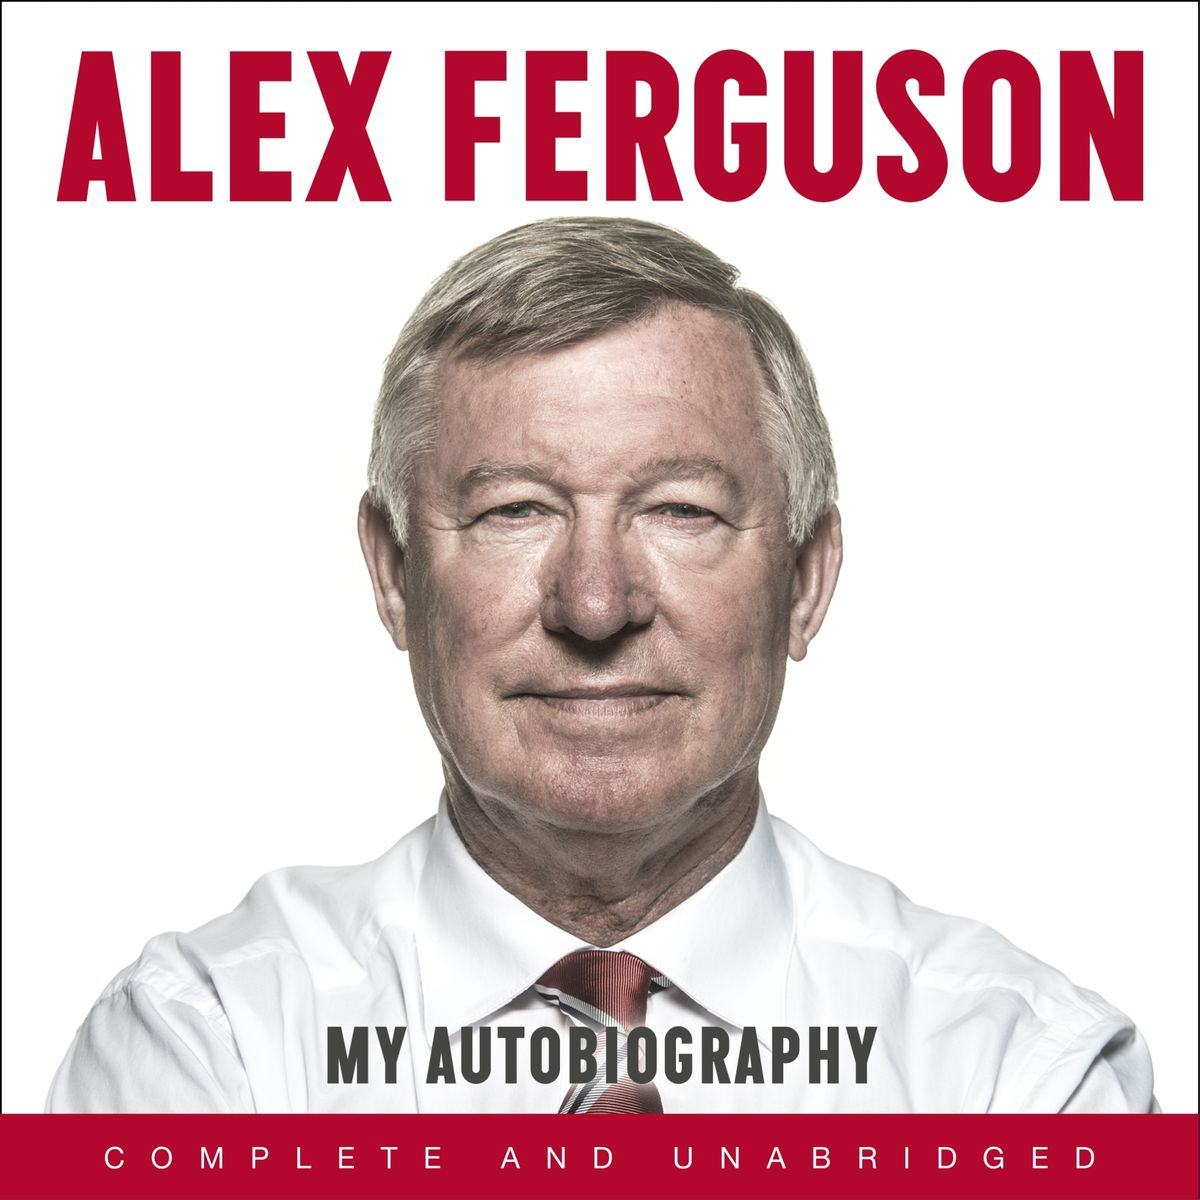 Alex Ferguson - My Autobiography for COVID-19